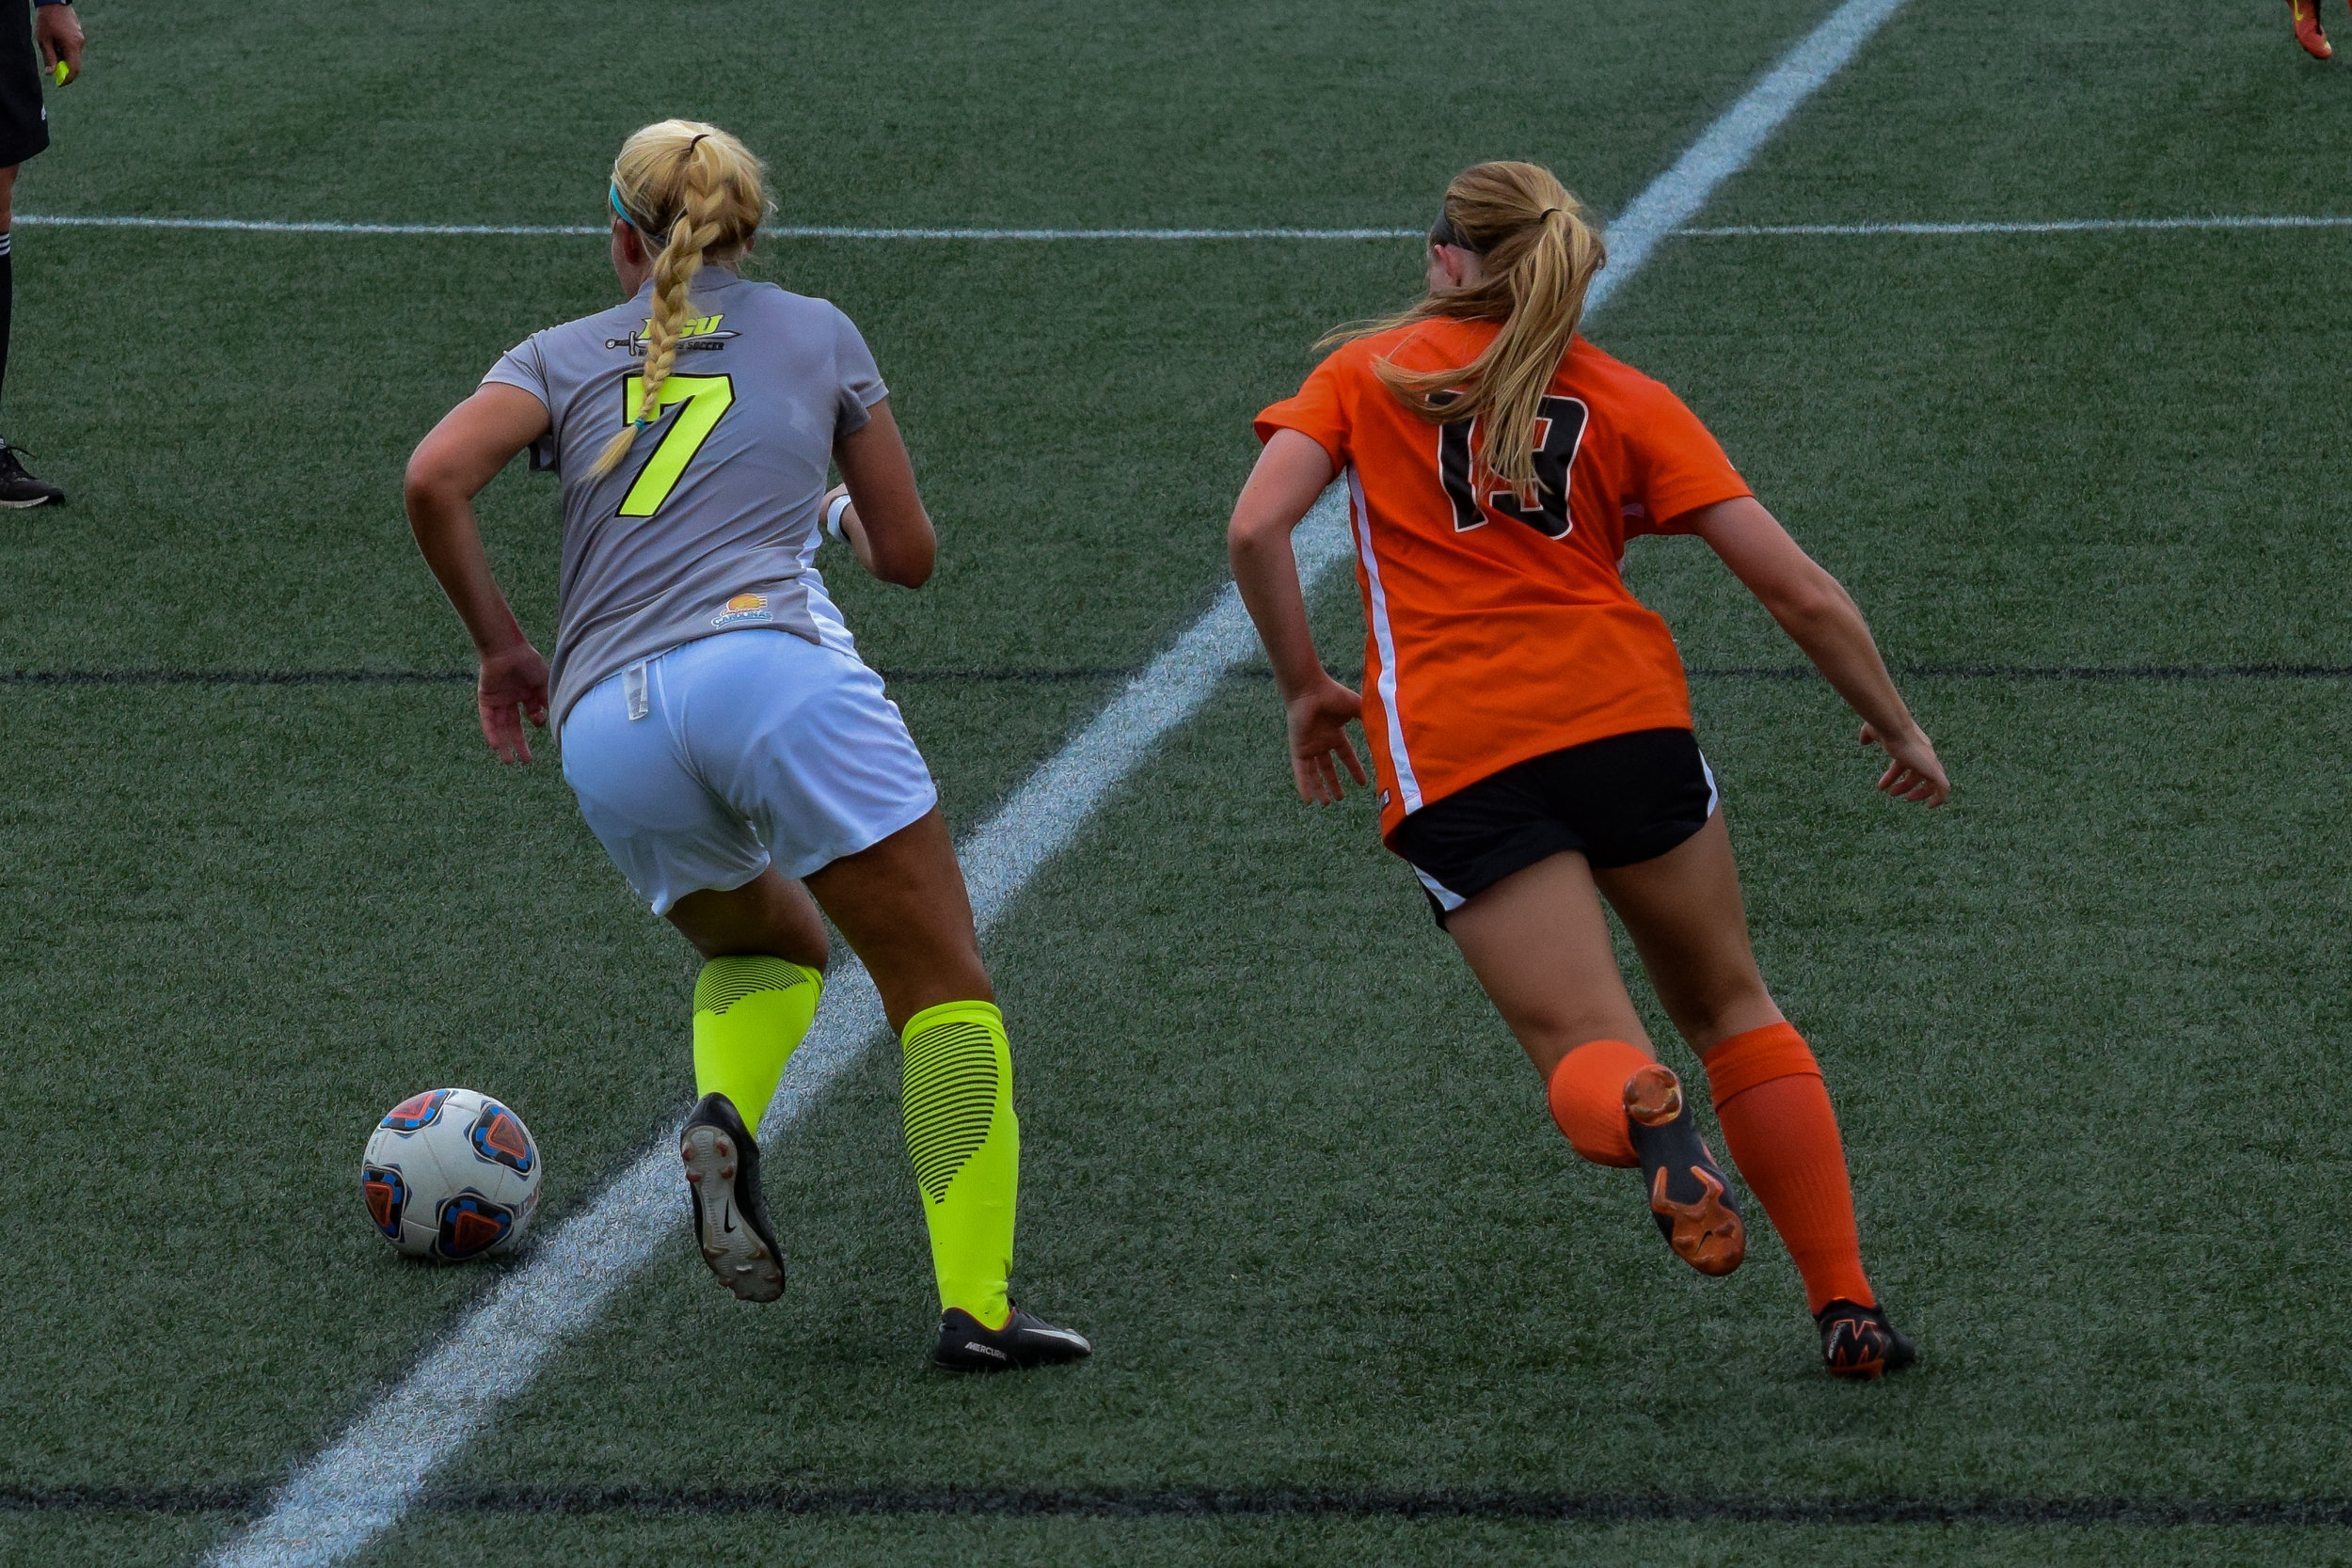 #7 Abby Robinson begins to run the ball back to the opposite side of the field to attempt to make a goal.